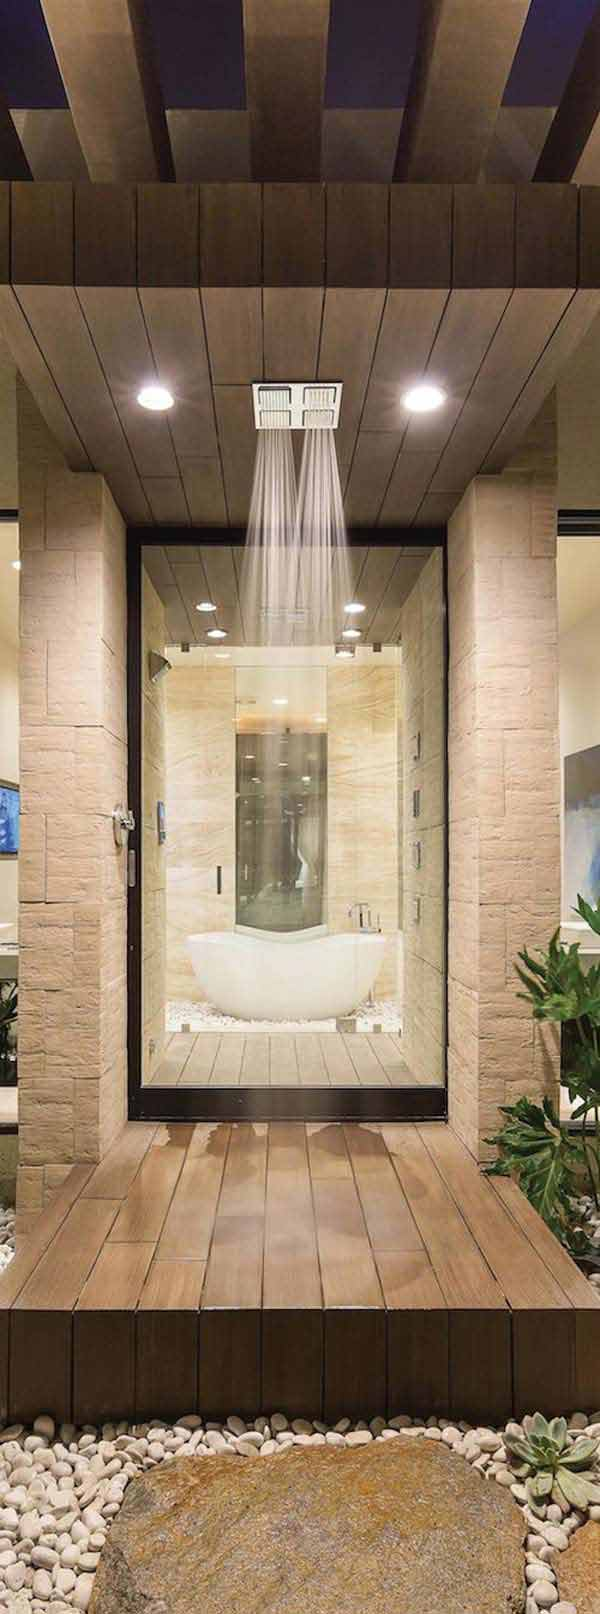 25+ Must See Rain Shower Ideas for Your Dream Bathroom ... on Contemporary:kkgewzoz5M4= Small Bathroom Ideas  id=89089